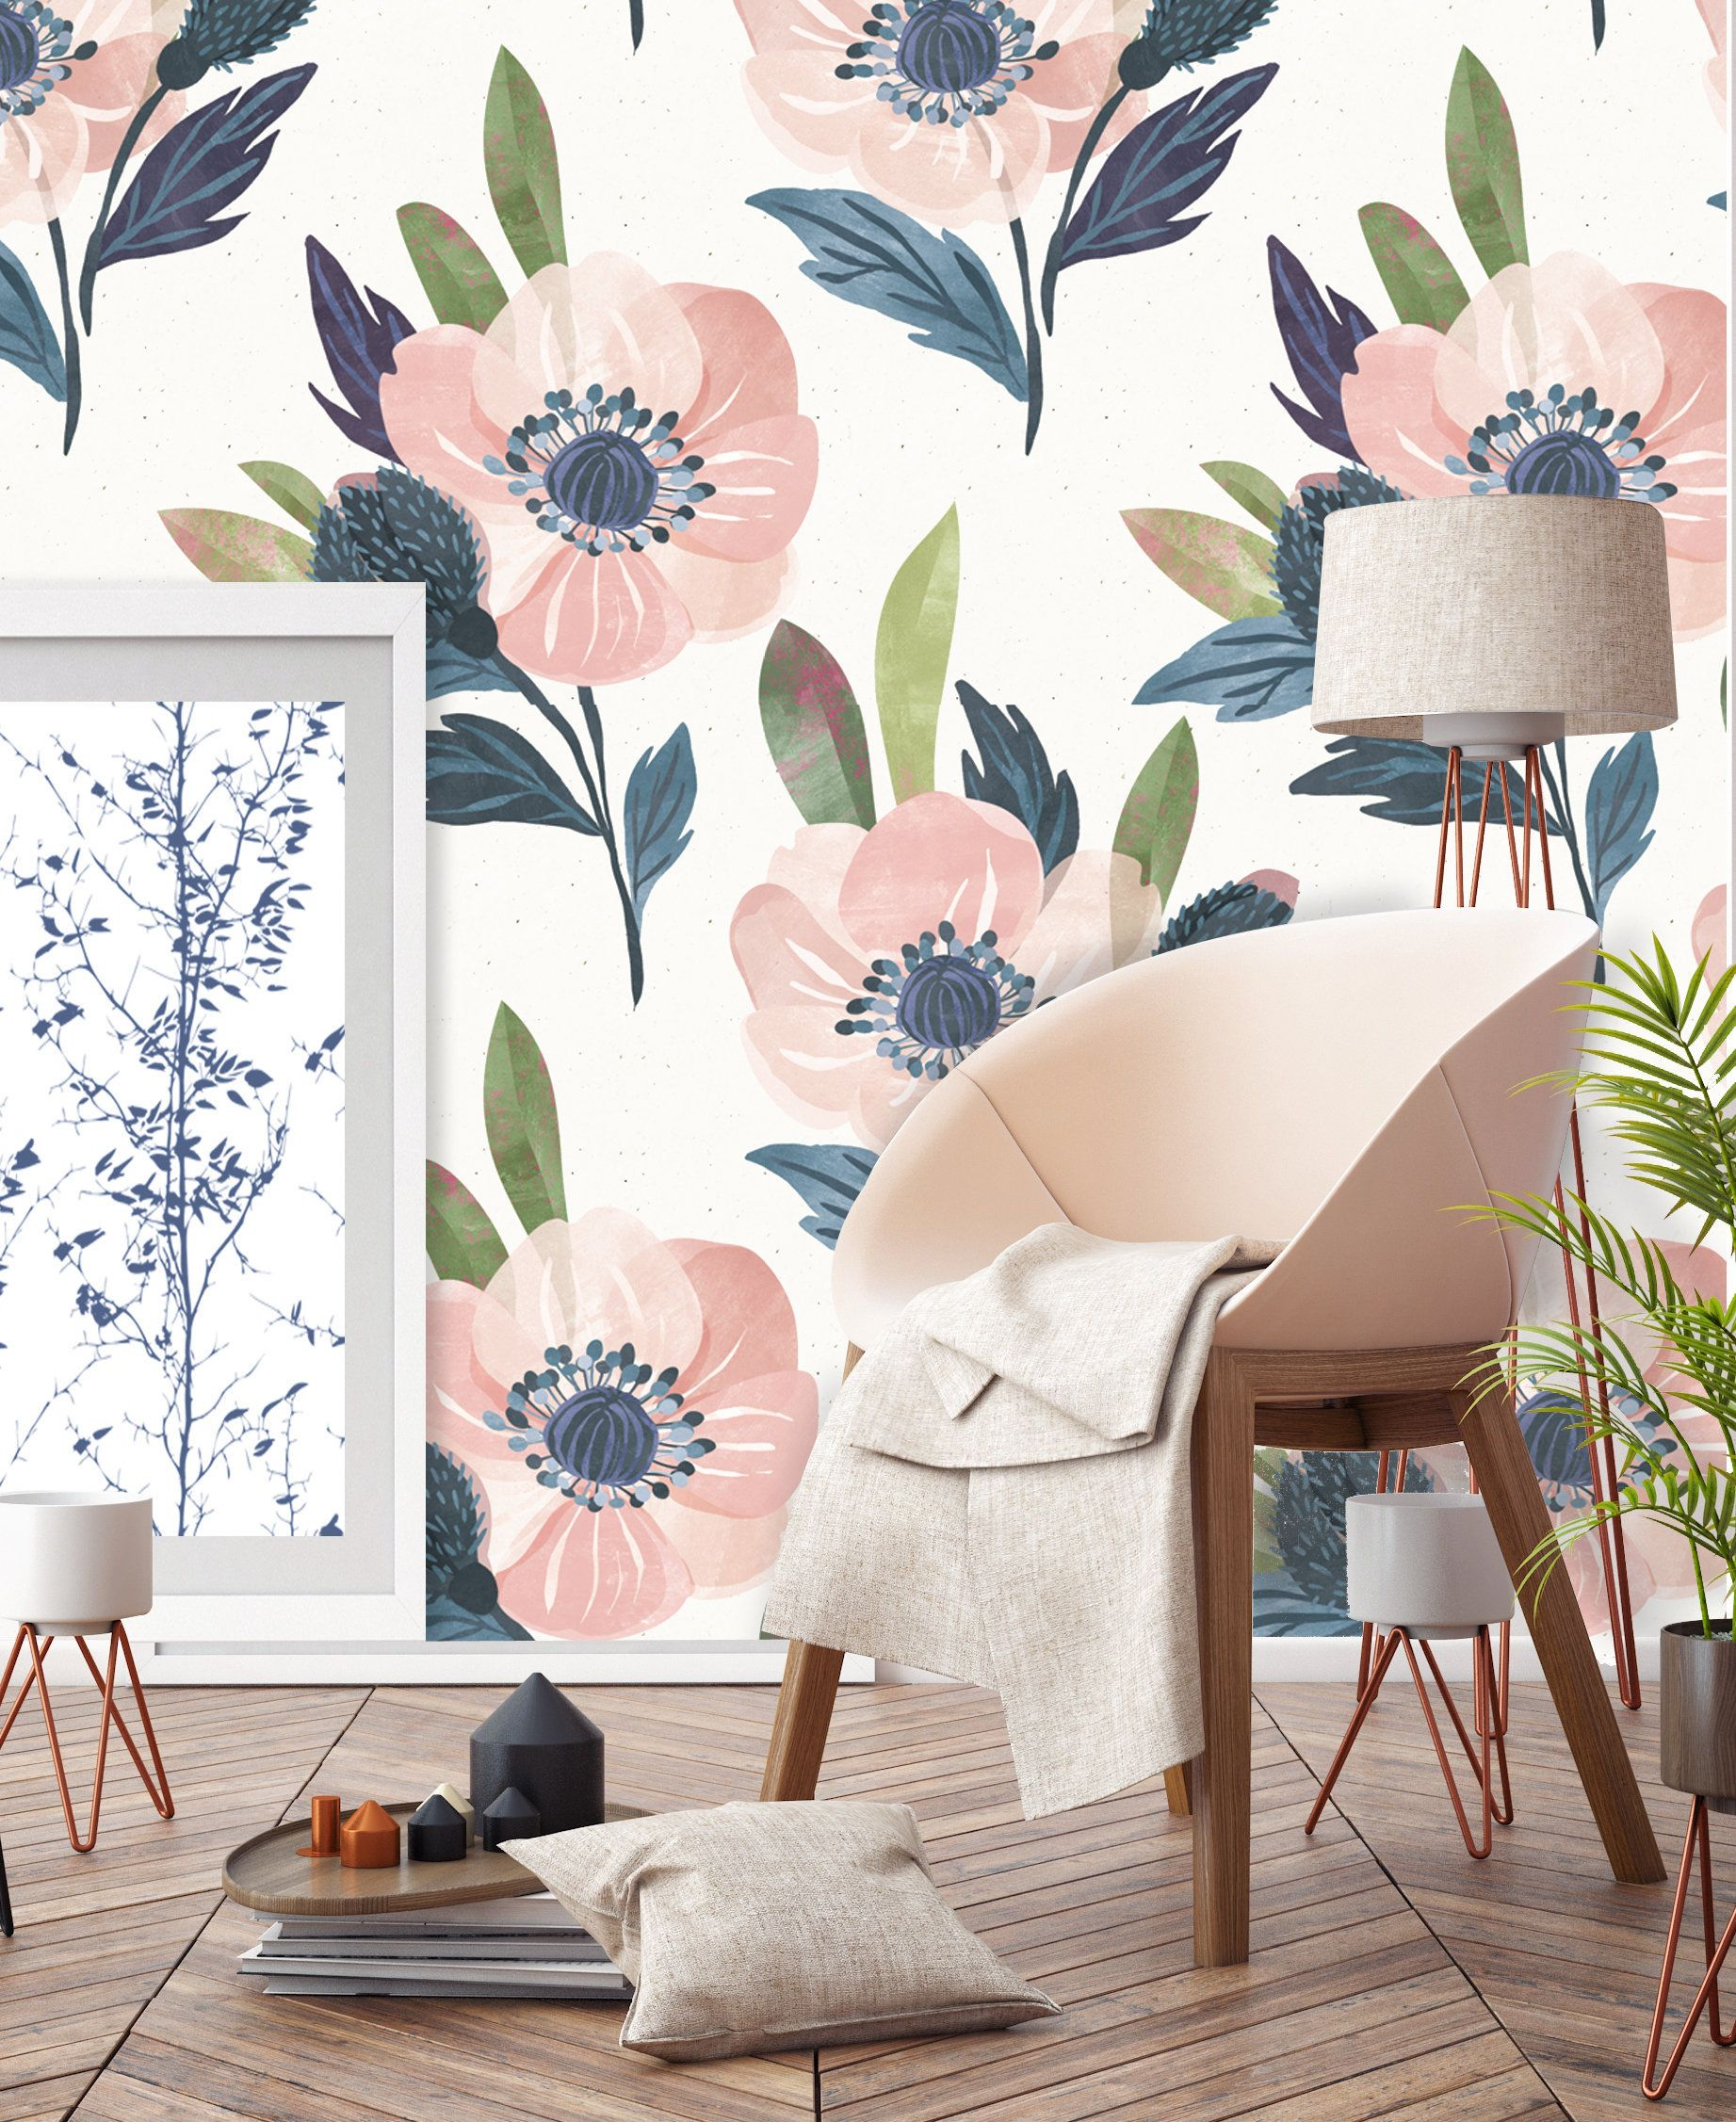 Blush Pink Fl Garden Wallpaper Flowers Self Adhesive Fabric Removable Repositionable R0046